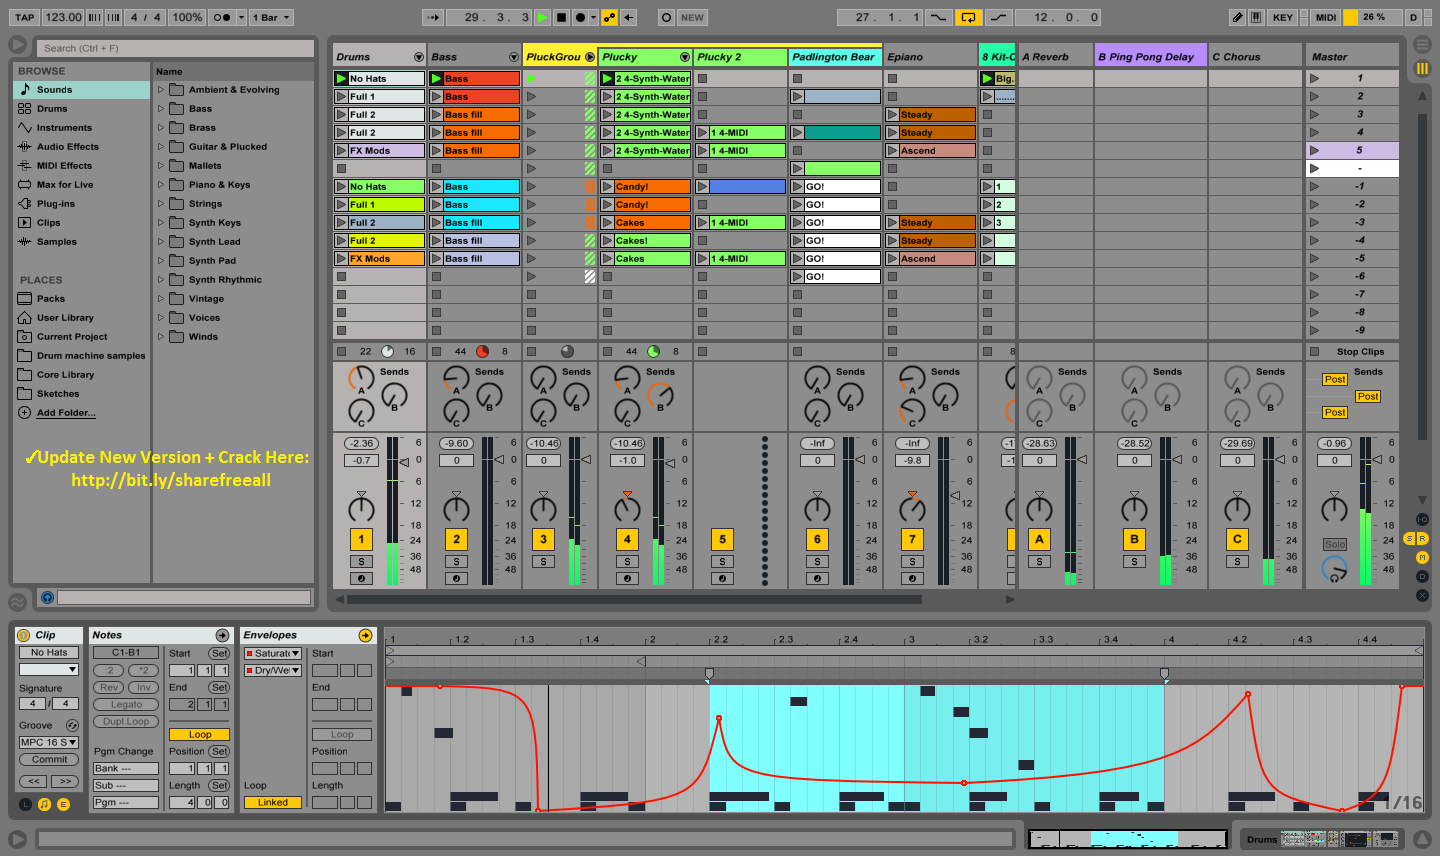 ableton live 9 download free crack